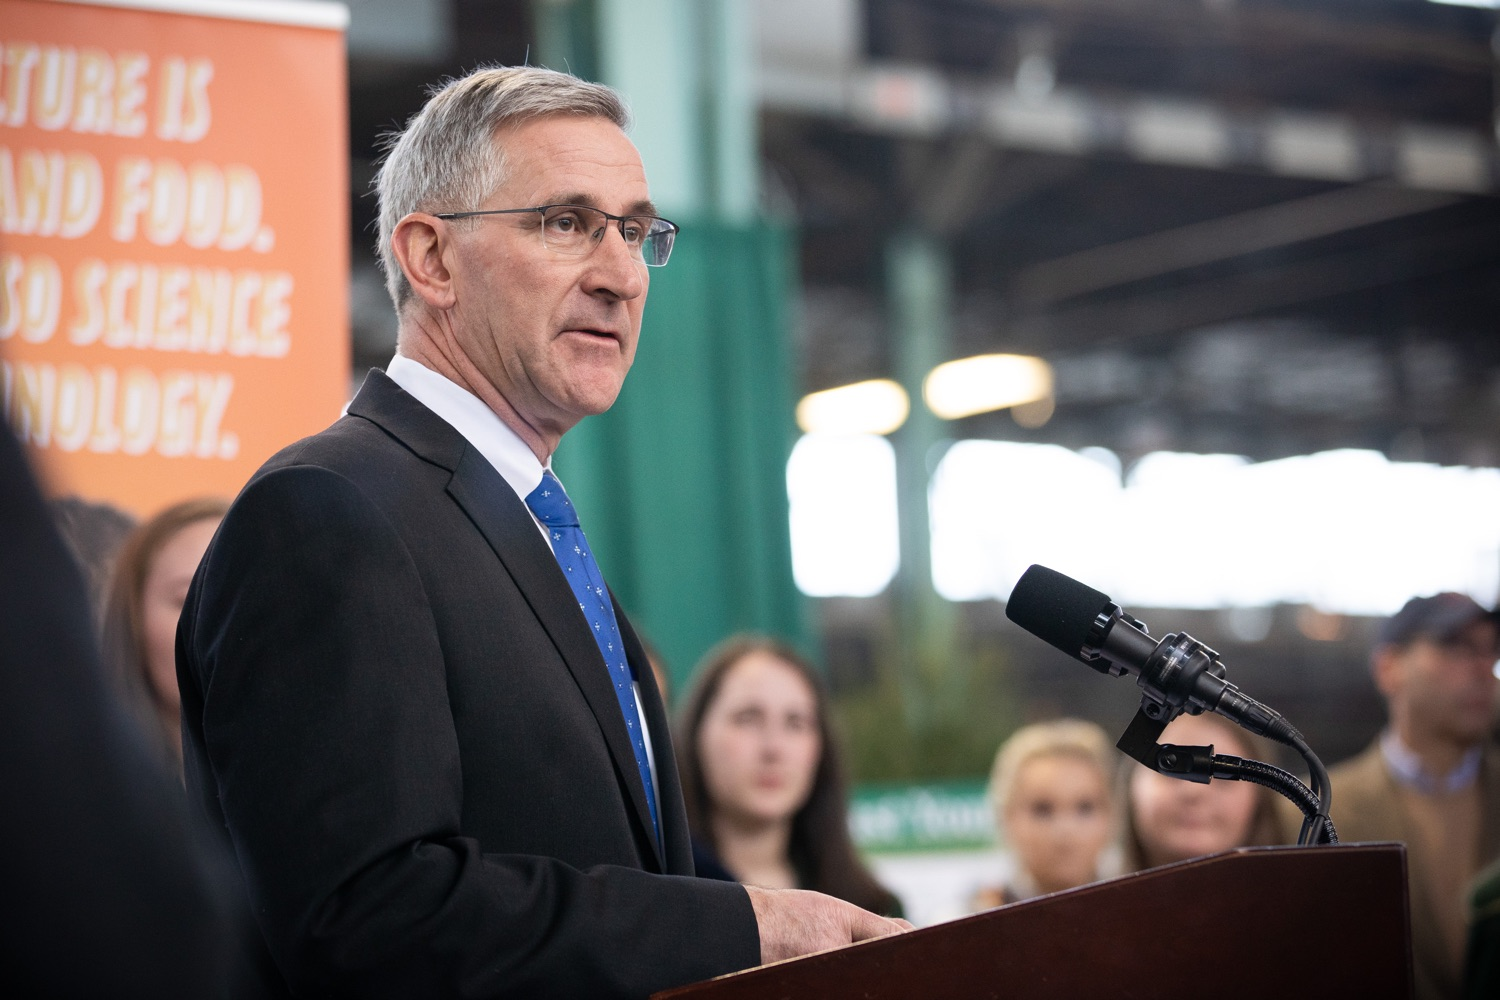 """<a href=""""https://filesource.wostreaming.net/commonwealthofpa/photo/17649_agric_youth_grant_farm_bill_dz_011.jpg"""" target=""""_blank"""">⇣Download Photo<br></a>Agriculture Secretary Russell Redding speaking at the announcement. Governor Tom Wolf today announced the approval of $500,000 in Ag and Youth Grants to fund 55 projects that will improve access to agriculture education in the commonwealth, with a goal of addressing the looming 75,000 workforce deficit Pennsylvanias agriculture industry faces in the coming decade. Harrisburg, PA  January 6, 2020"""